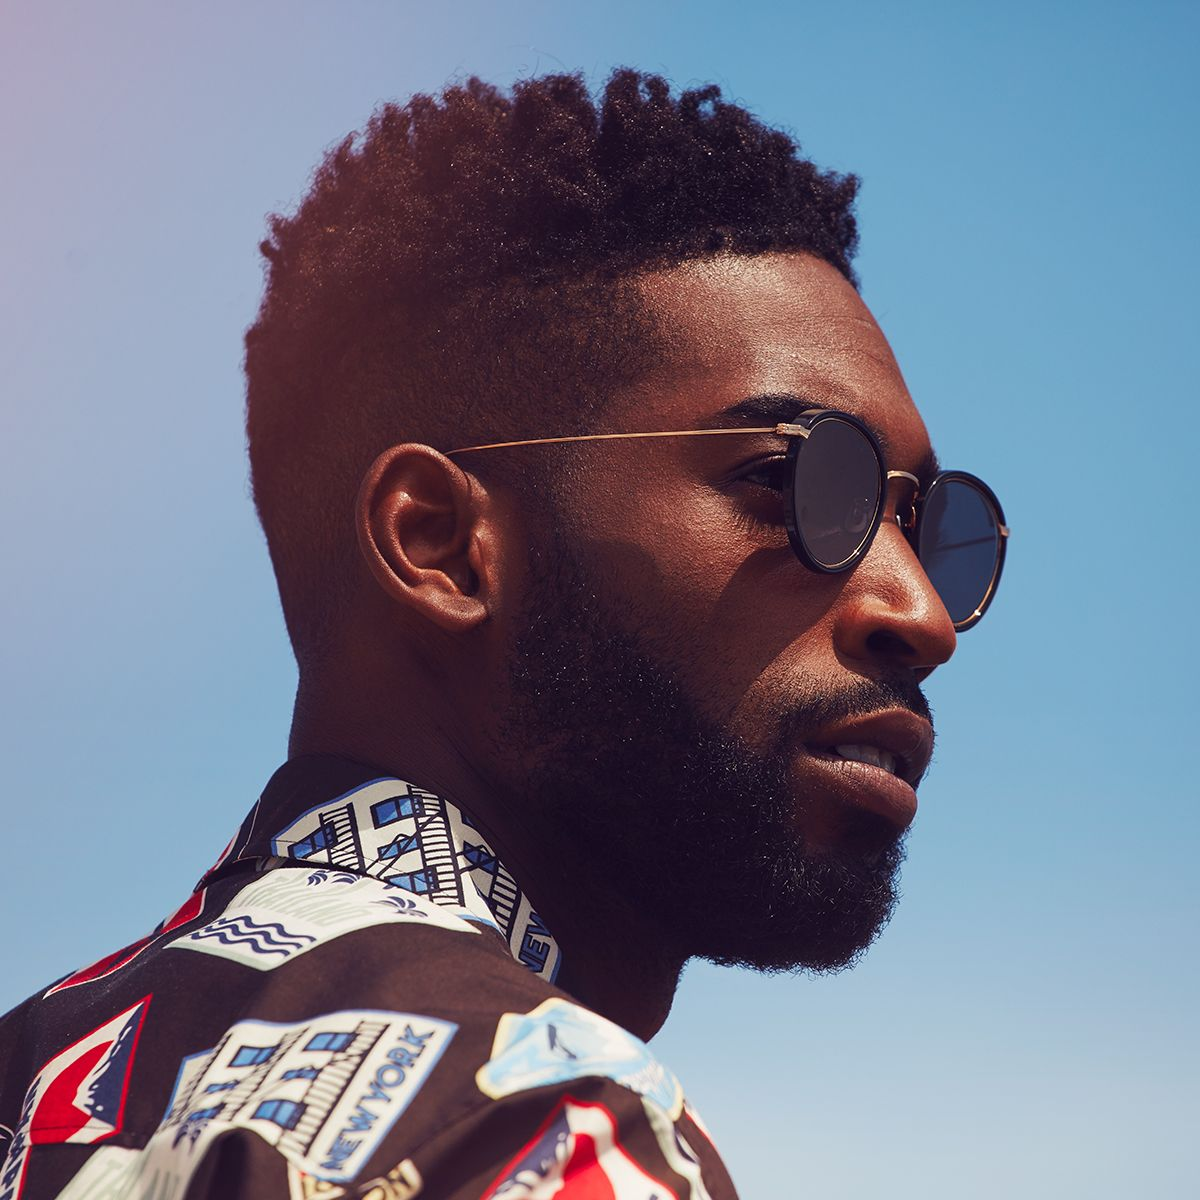 Le Meilleur Uk Rapper Tinie Tempah For Mr Porter Style Black Male Ce Mois Ci